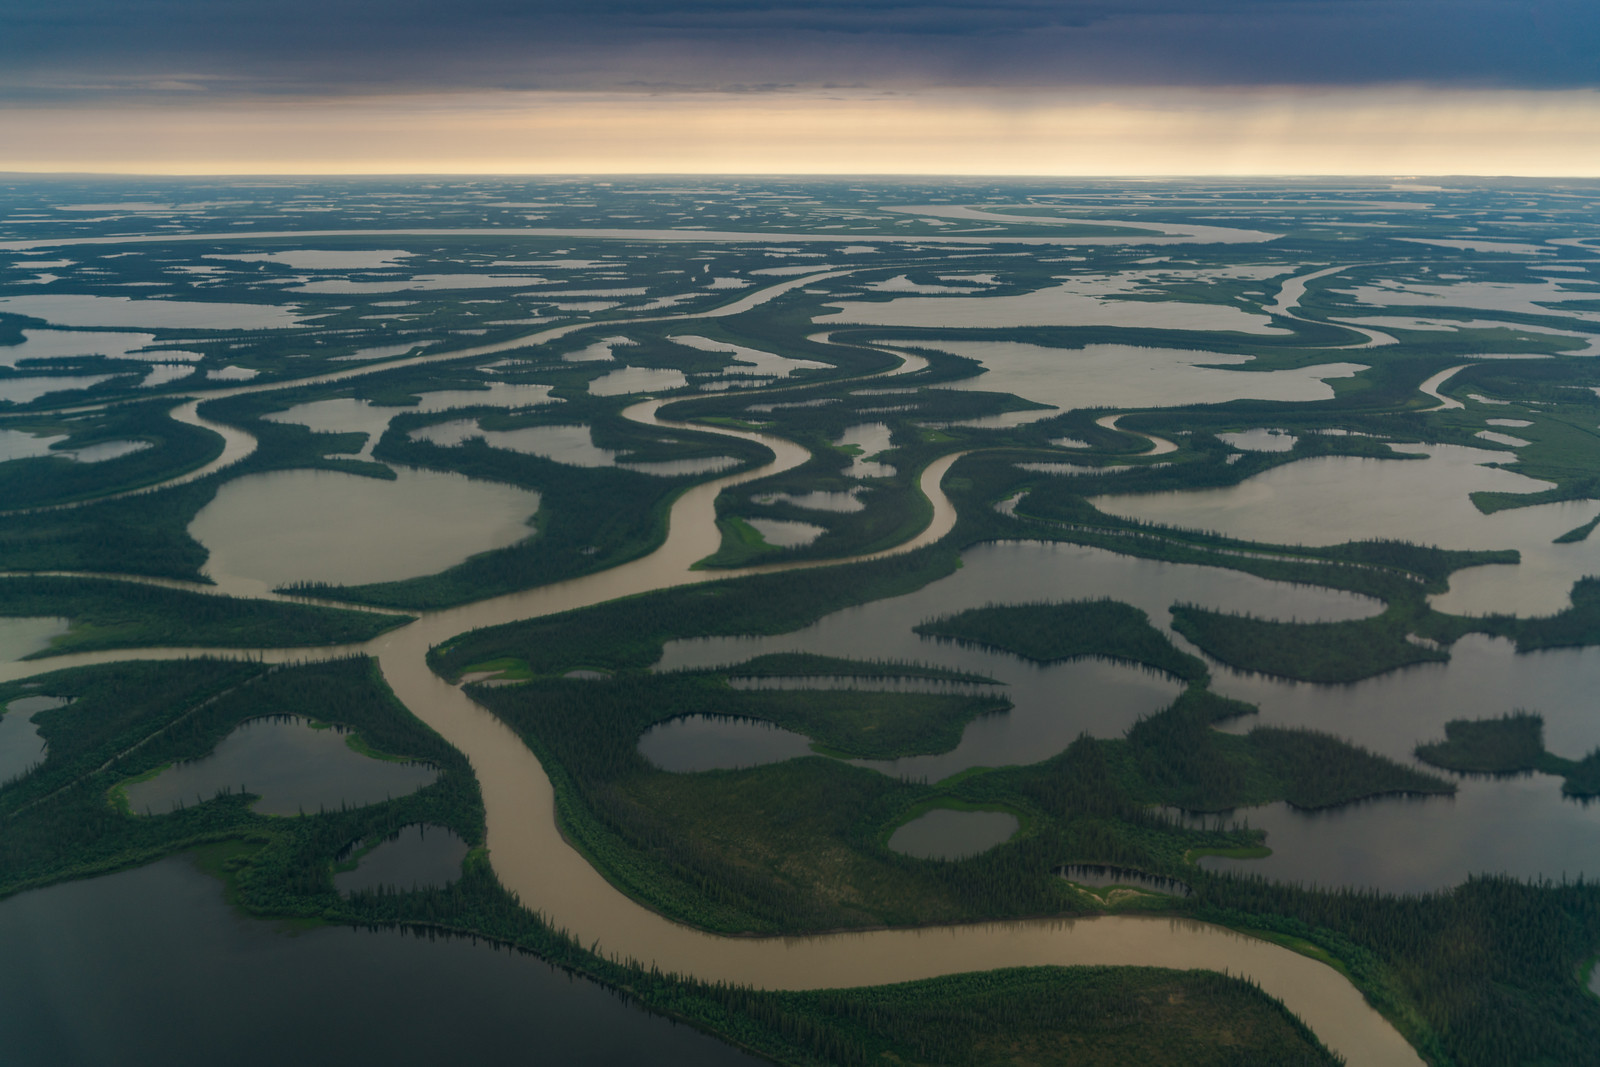 The Mackenzie Delta in the North West Territories